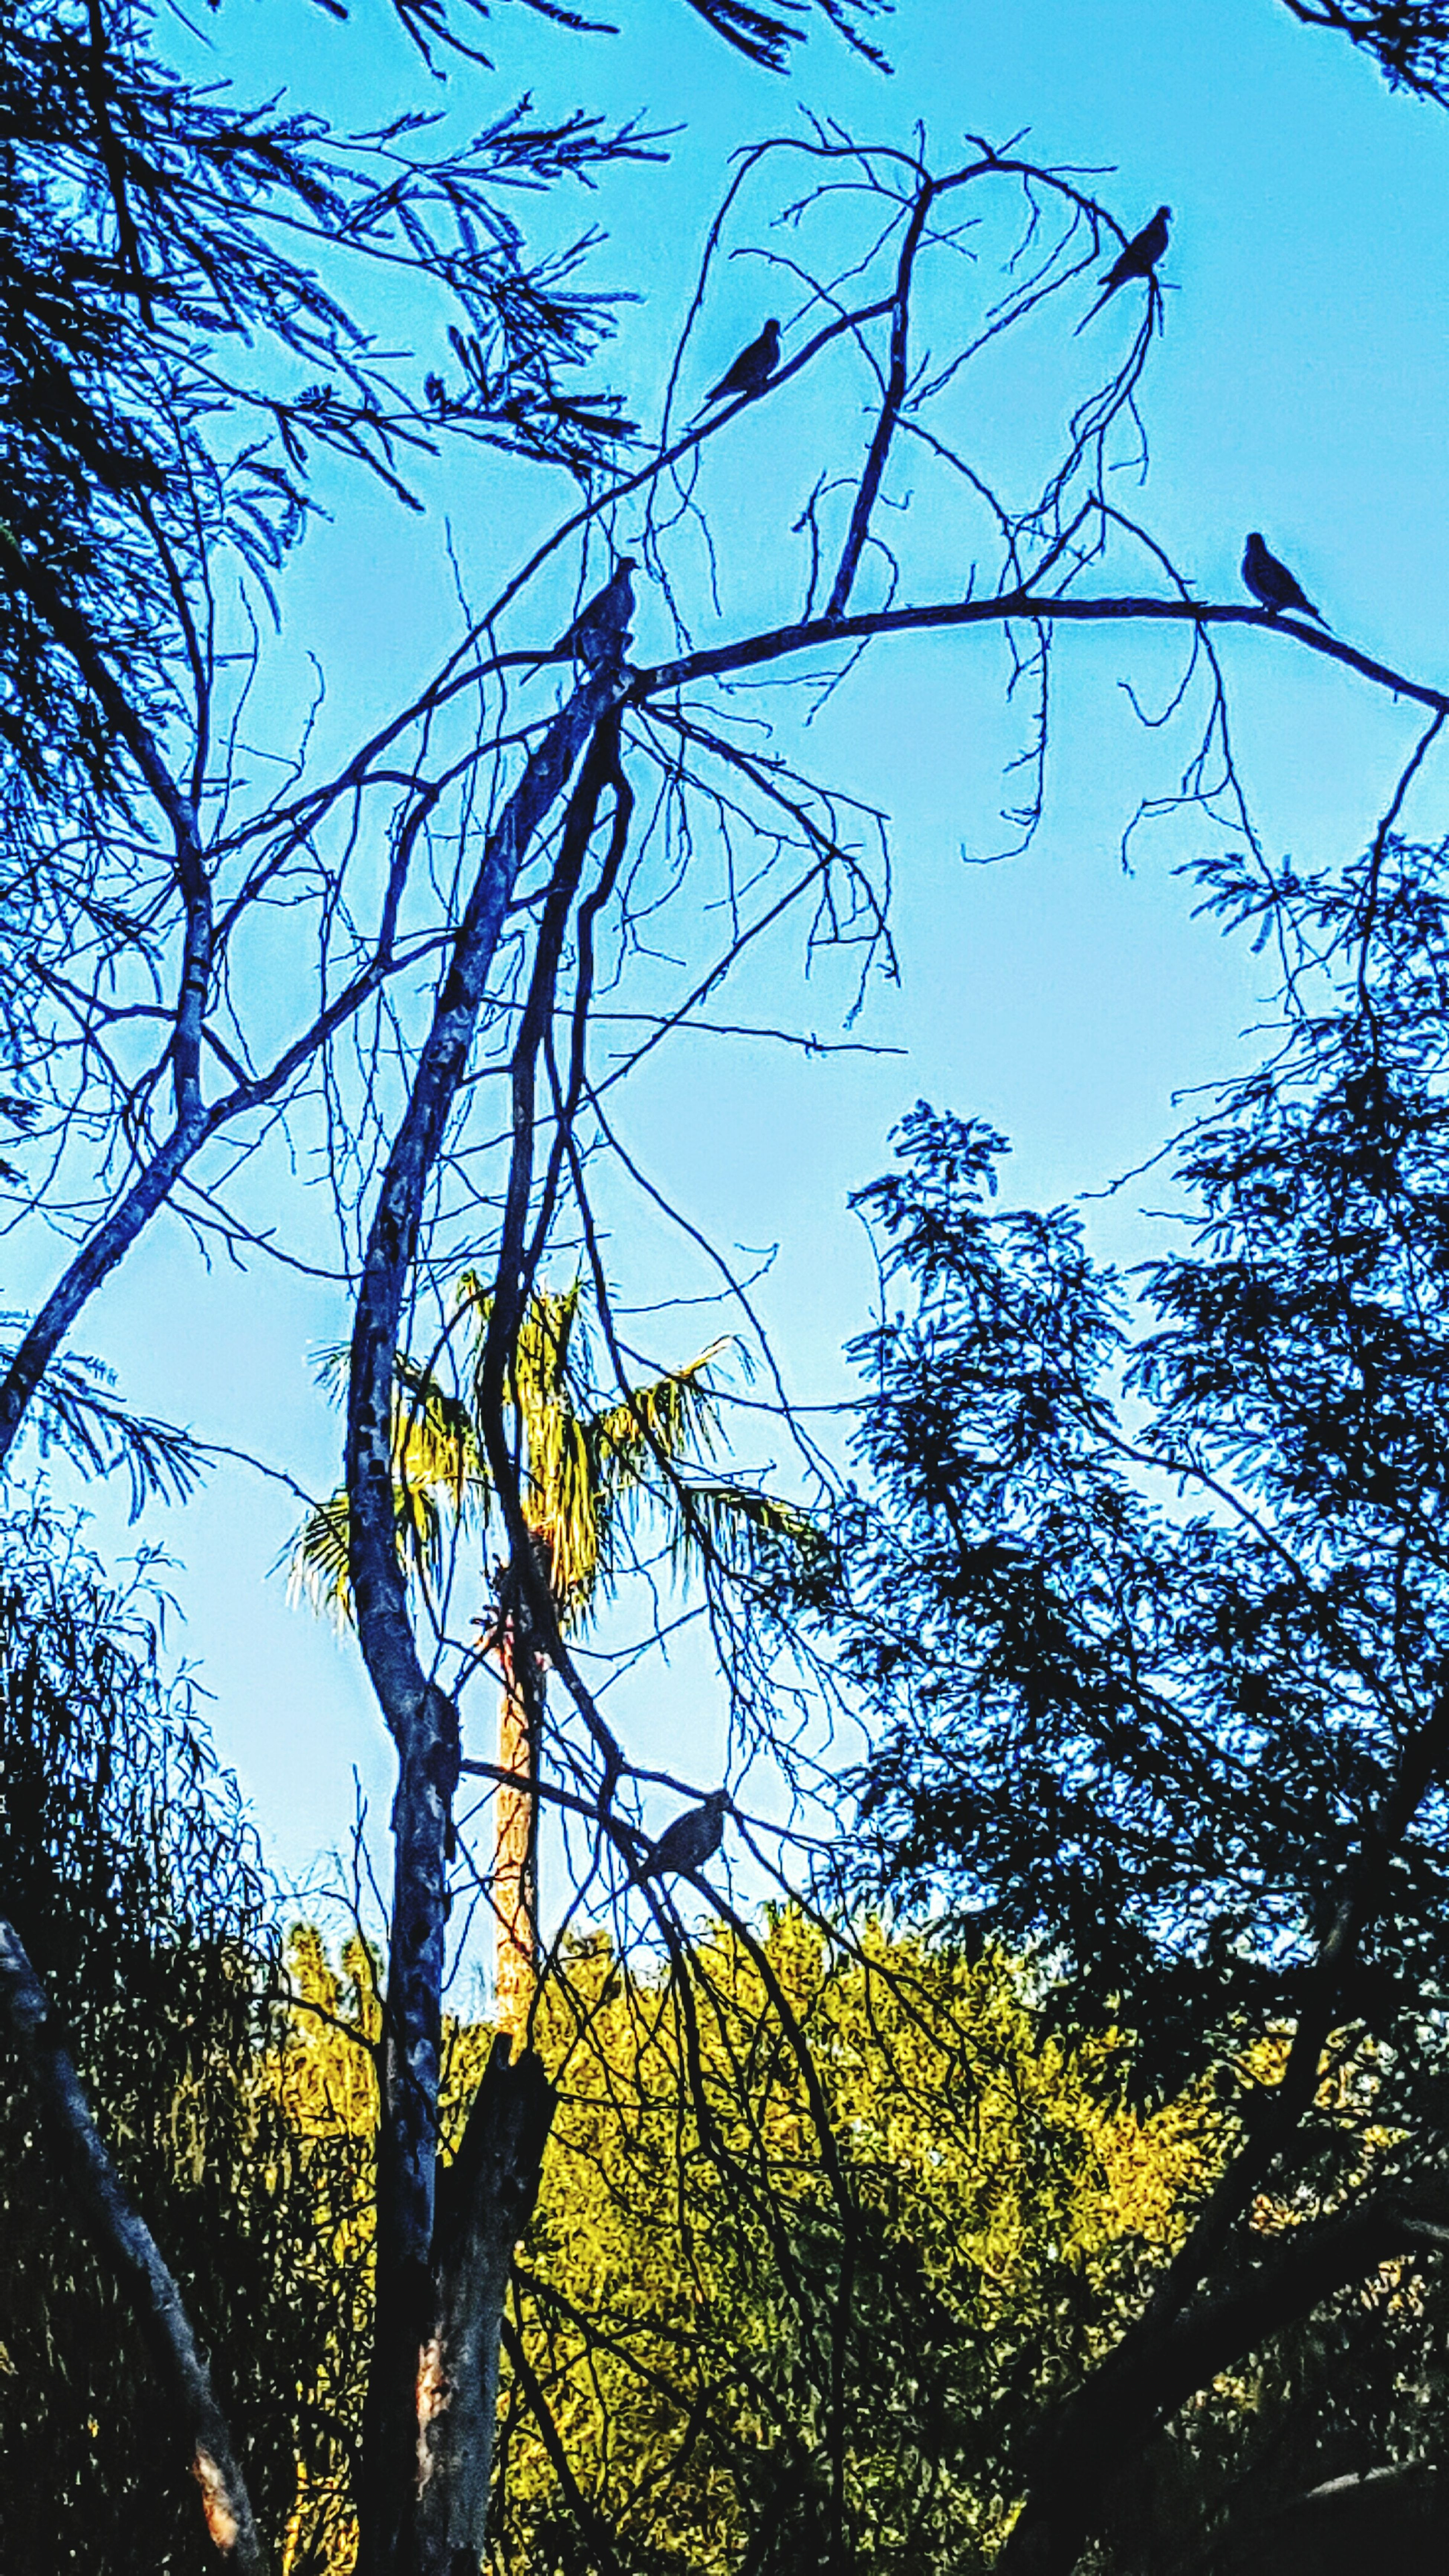 Hello World Washnexttothehouse Checkthisout Birds🐦⛅ Hanging Out Dead Tree FavoriteHangout Enjoying Life Outdoor Photography Skies At Dusk End Of The Day